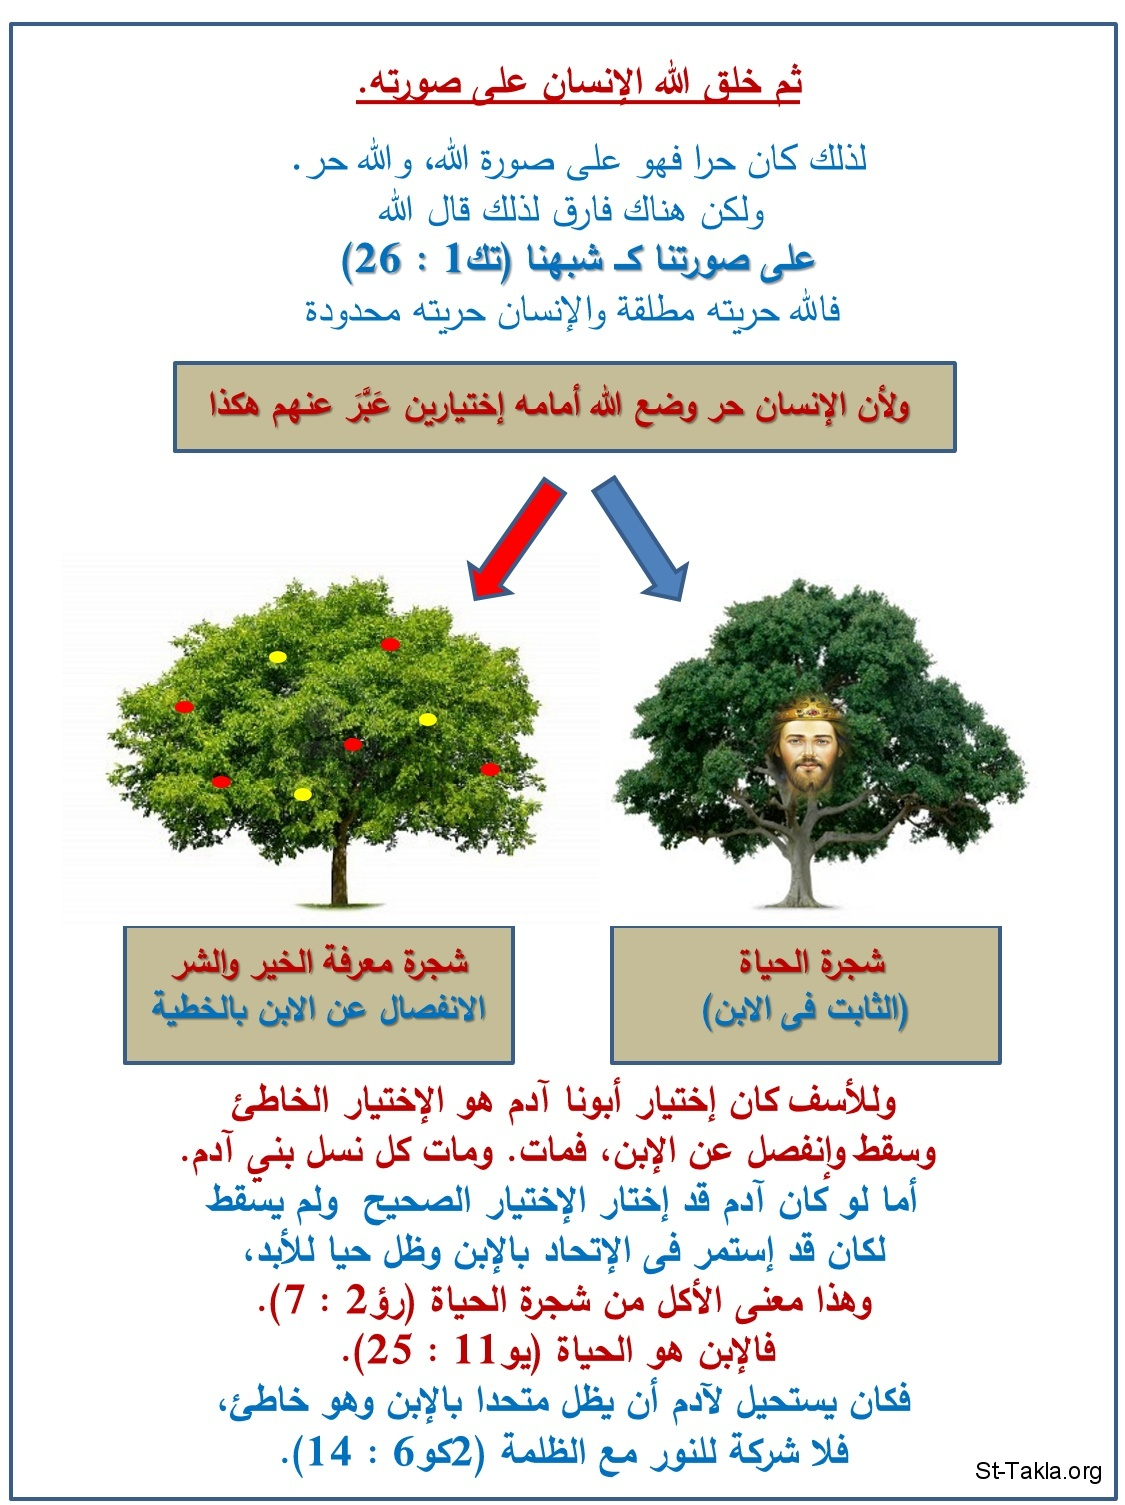 St-Takla.org Image: Man's creation, and tree choices: graph ���� �� ���� ������ ����: ���� ������� ����� ����� - ��� �����